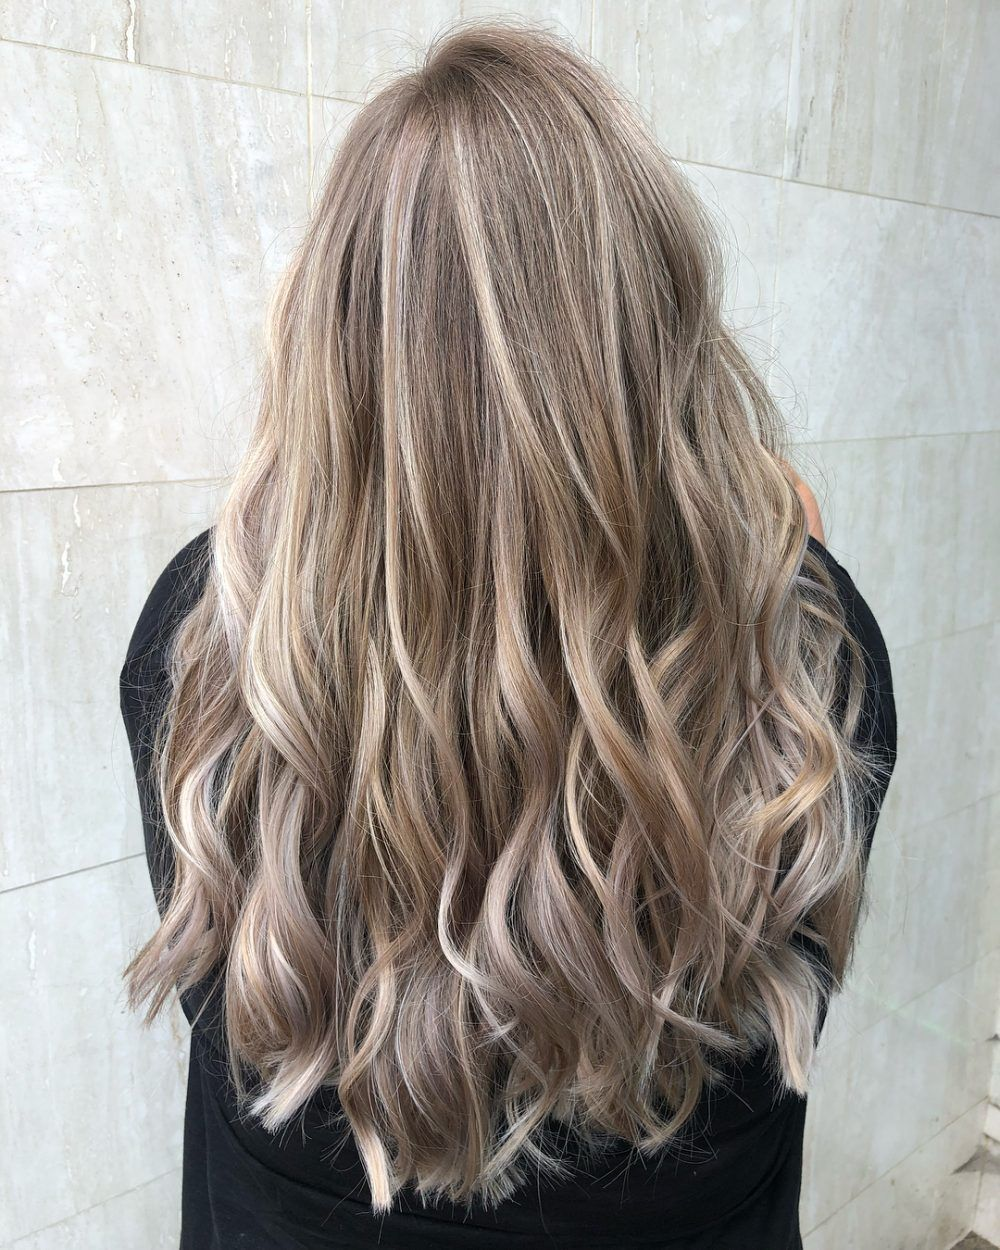 35 Hottest Chocolate Brown Hair Color Ideas Of 2021 Ash Blonde Hair Colour Medium Ash Blonde Hair Light Ash Blonde Hair